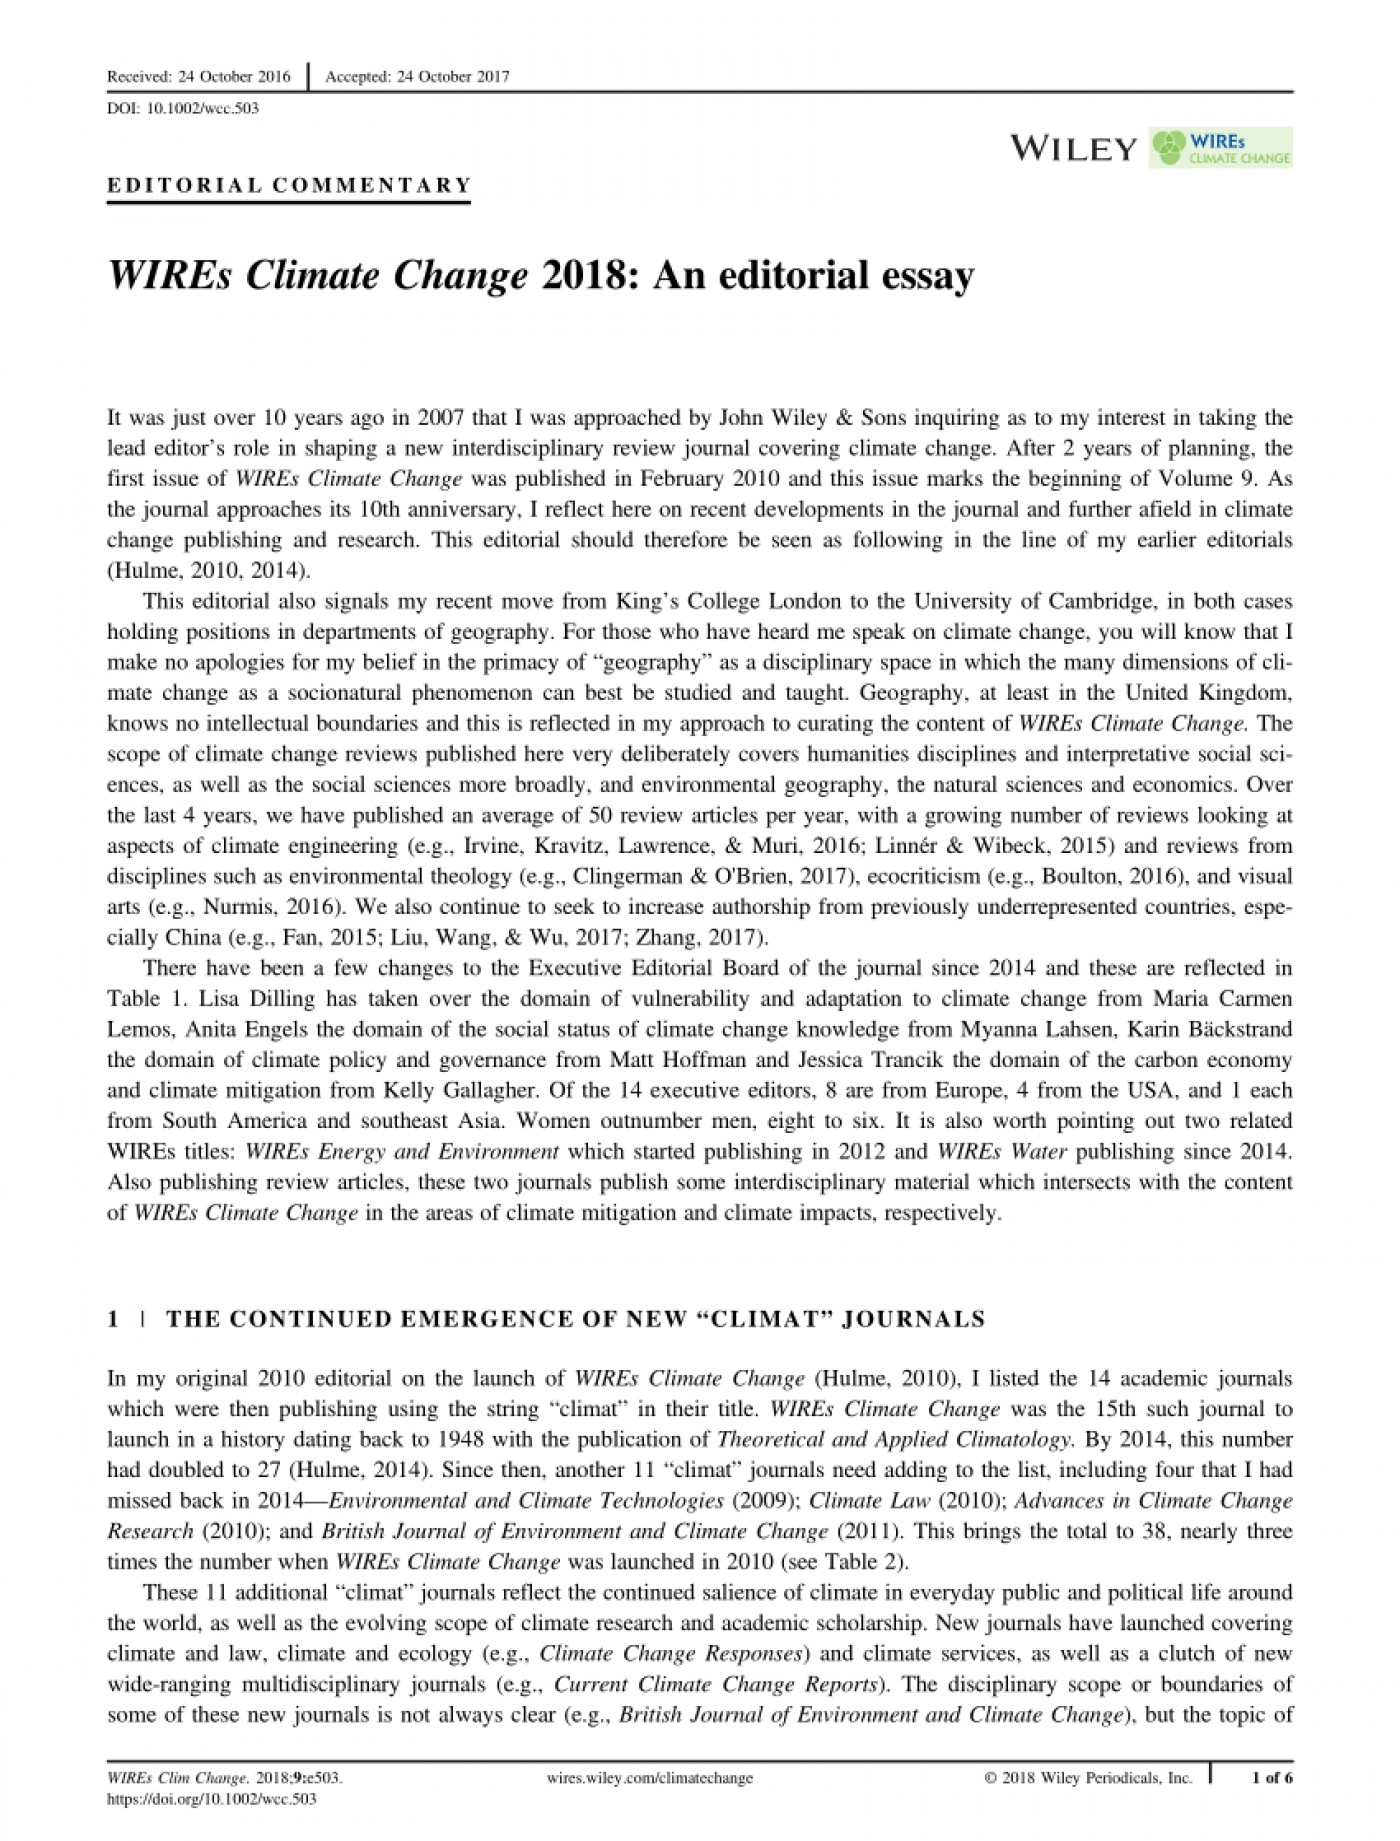 005 Essay Example Climate Change Awesome High School In English 150 Words Kenya Art And Competition 2018 1400